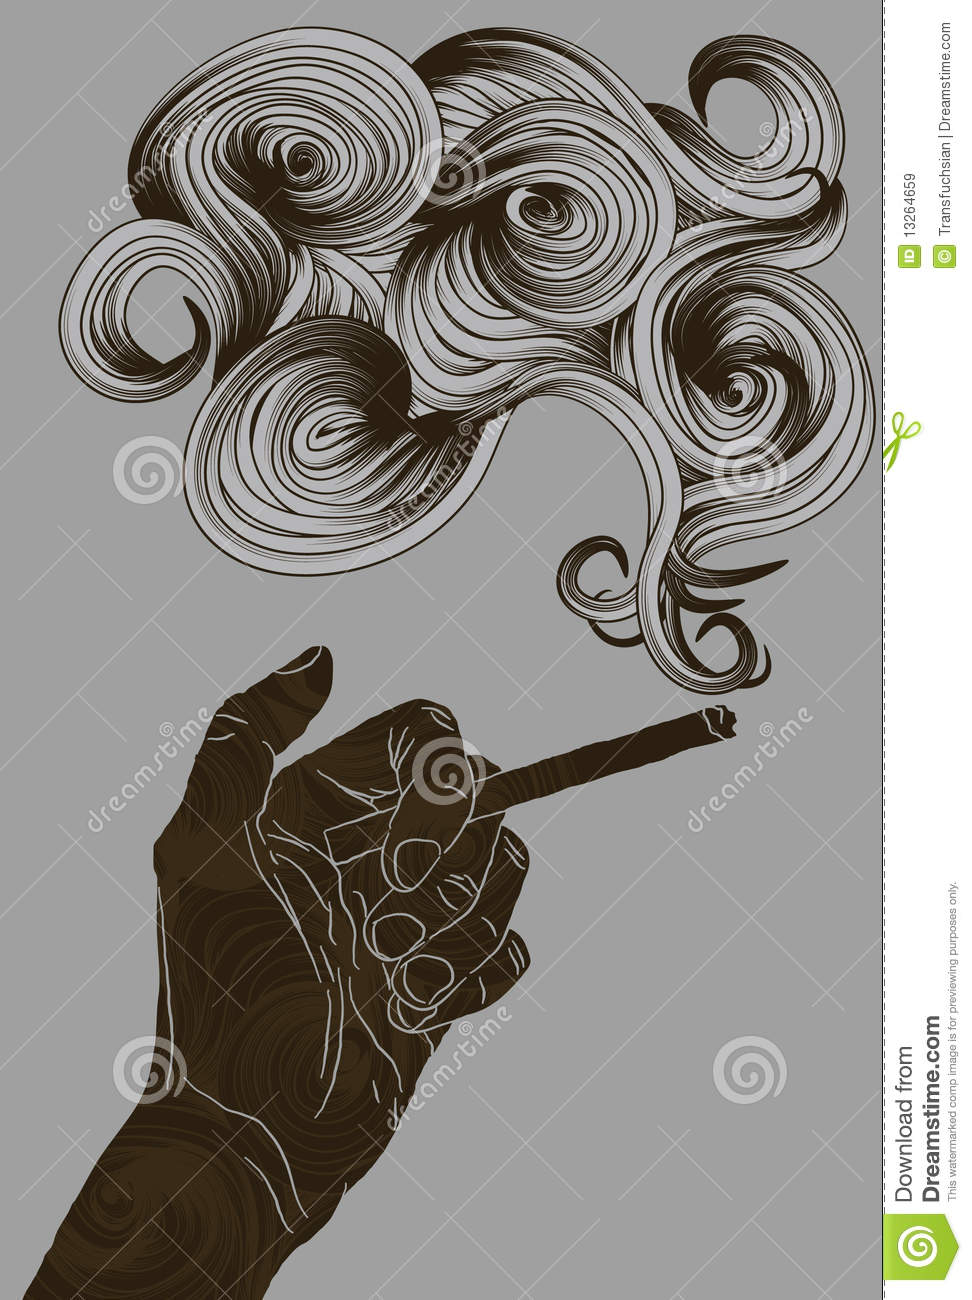 abstract illustrated hand holding a cigarette stock vector